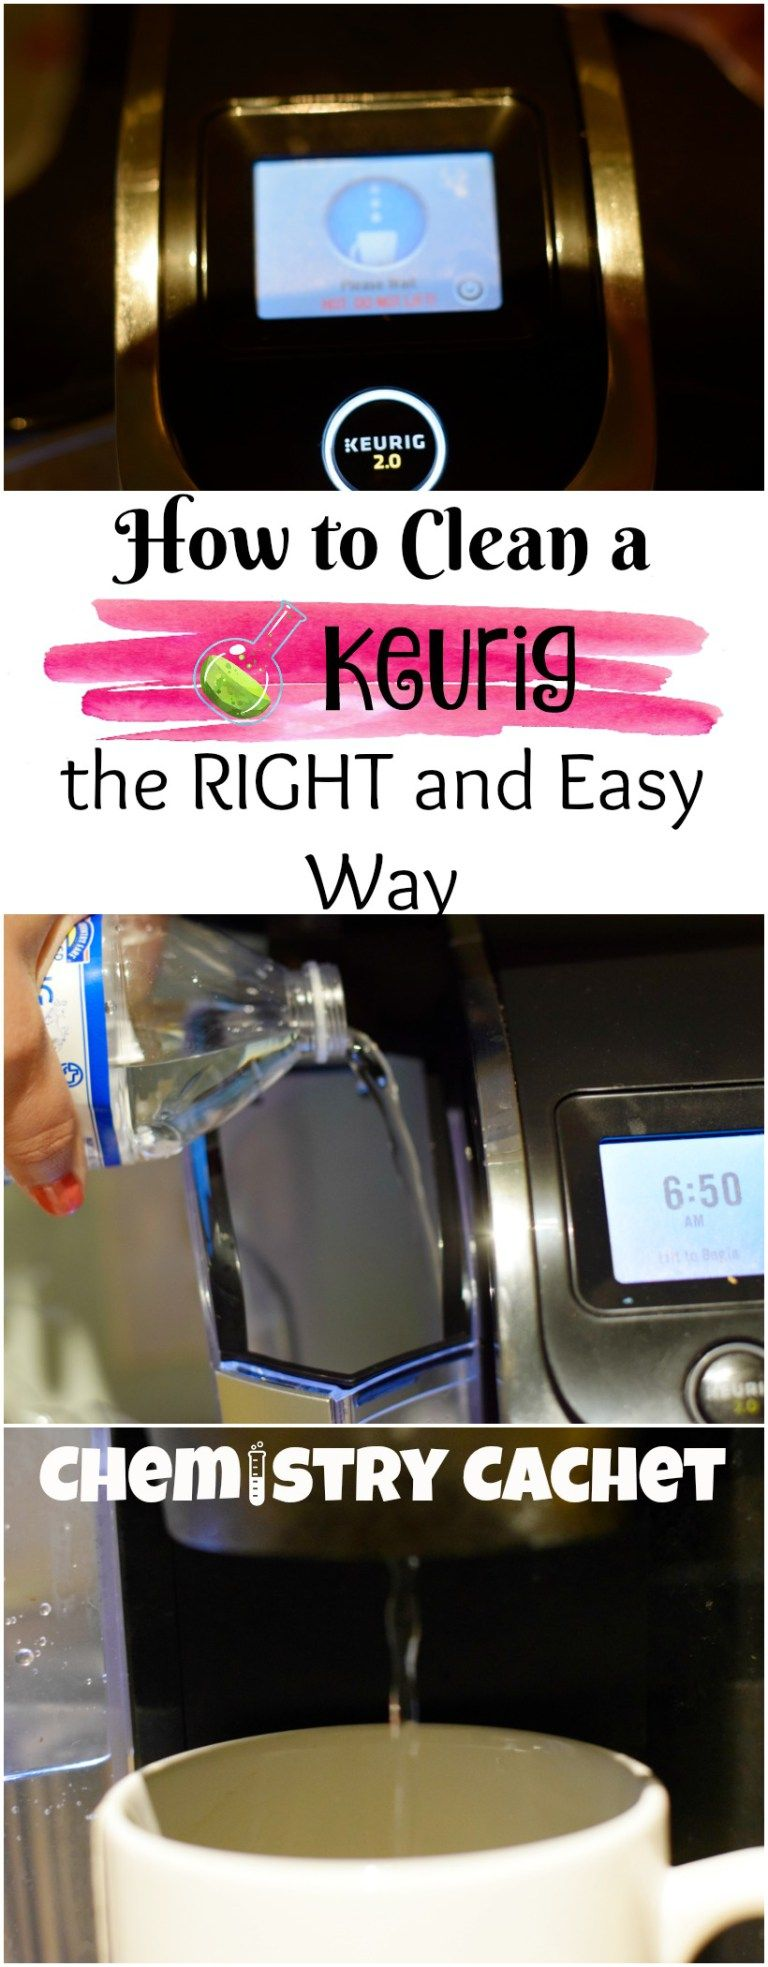 How to Clean a Keurig Machine the Right and Easy Way